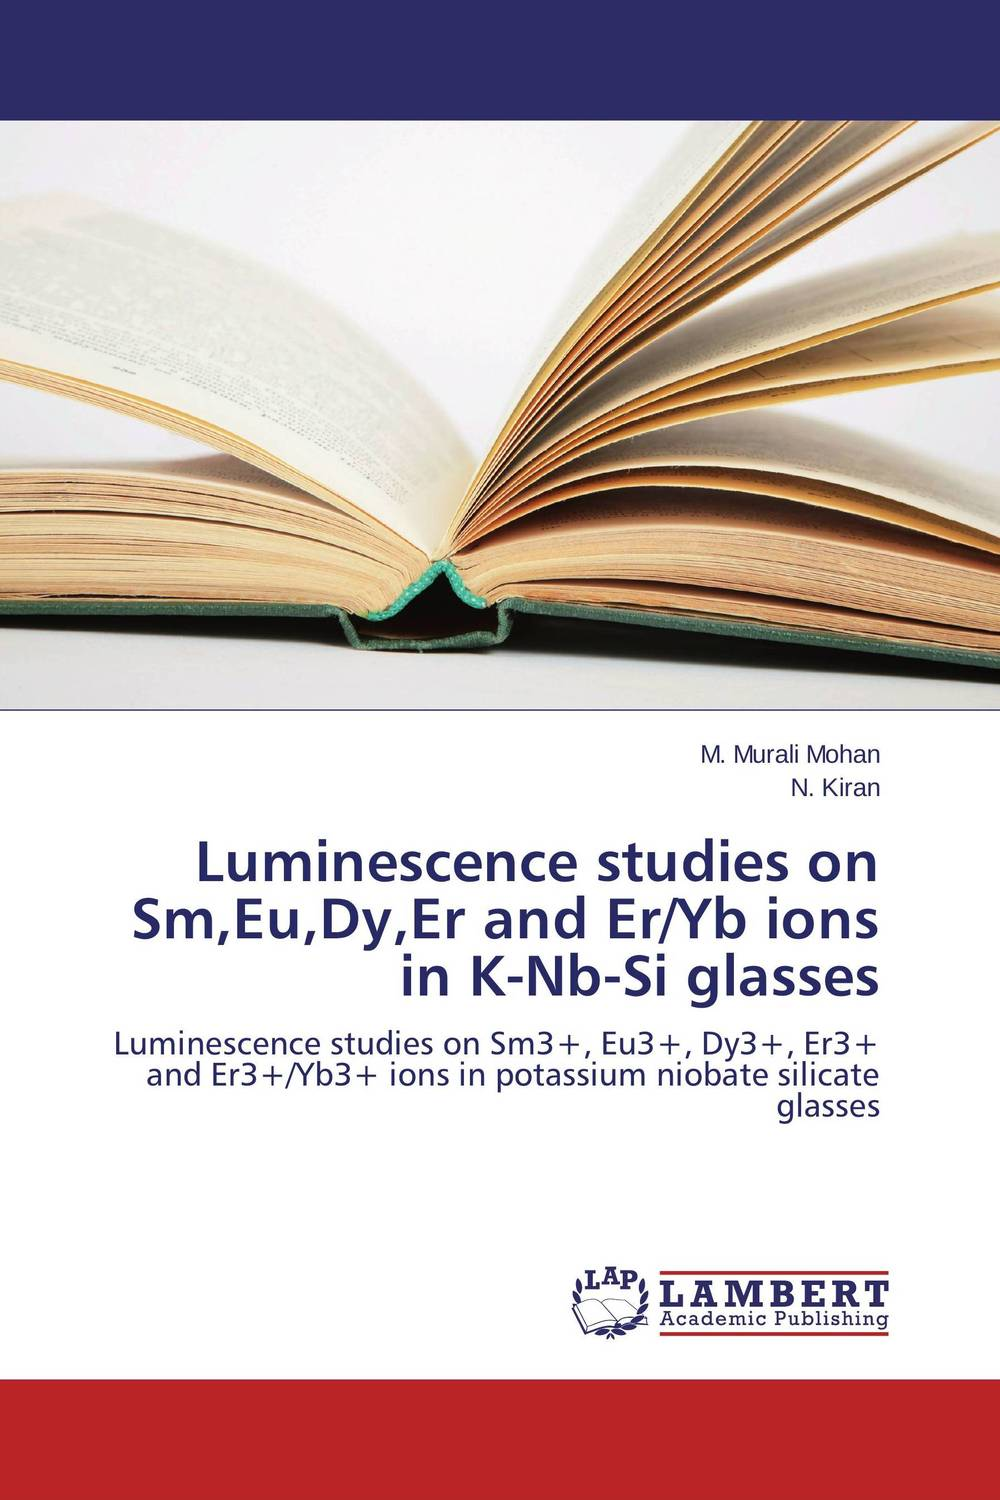 Luminescence studies on Sm,Eu,Dy,Er and Er/Yb ions in K-Nb-Si glasses rakesh kumar amrit pal singh and sangeeta obrai computational and solution studies of cu ii ions with podands